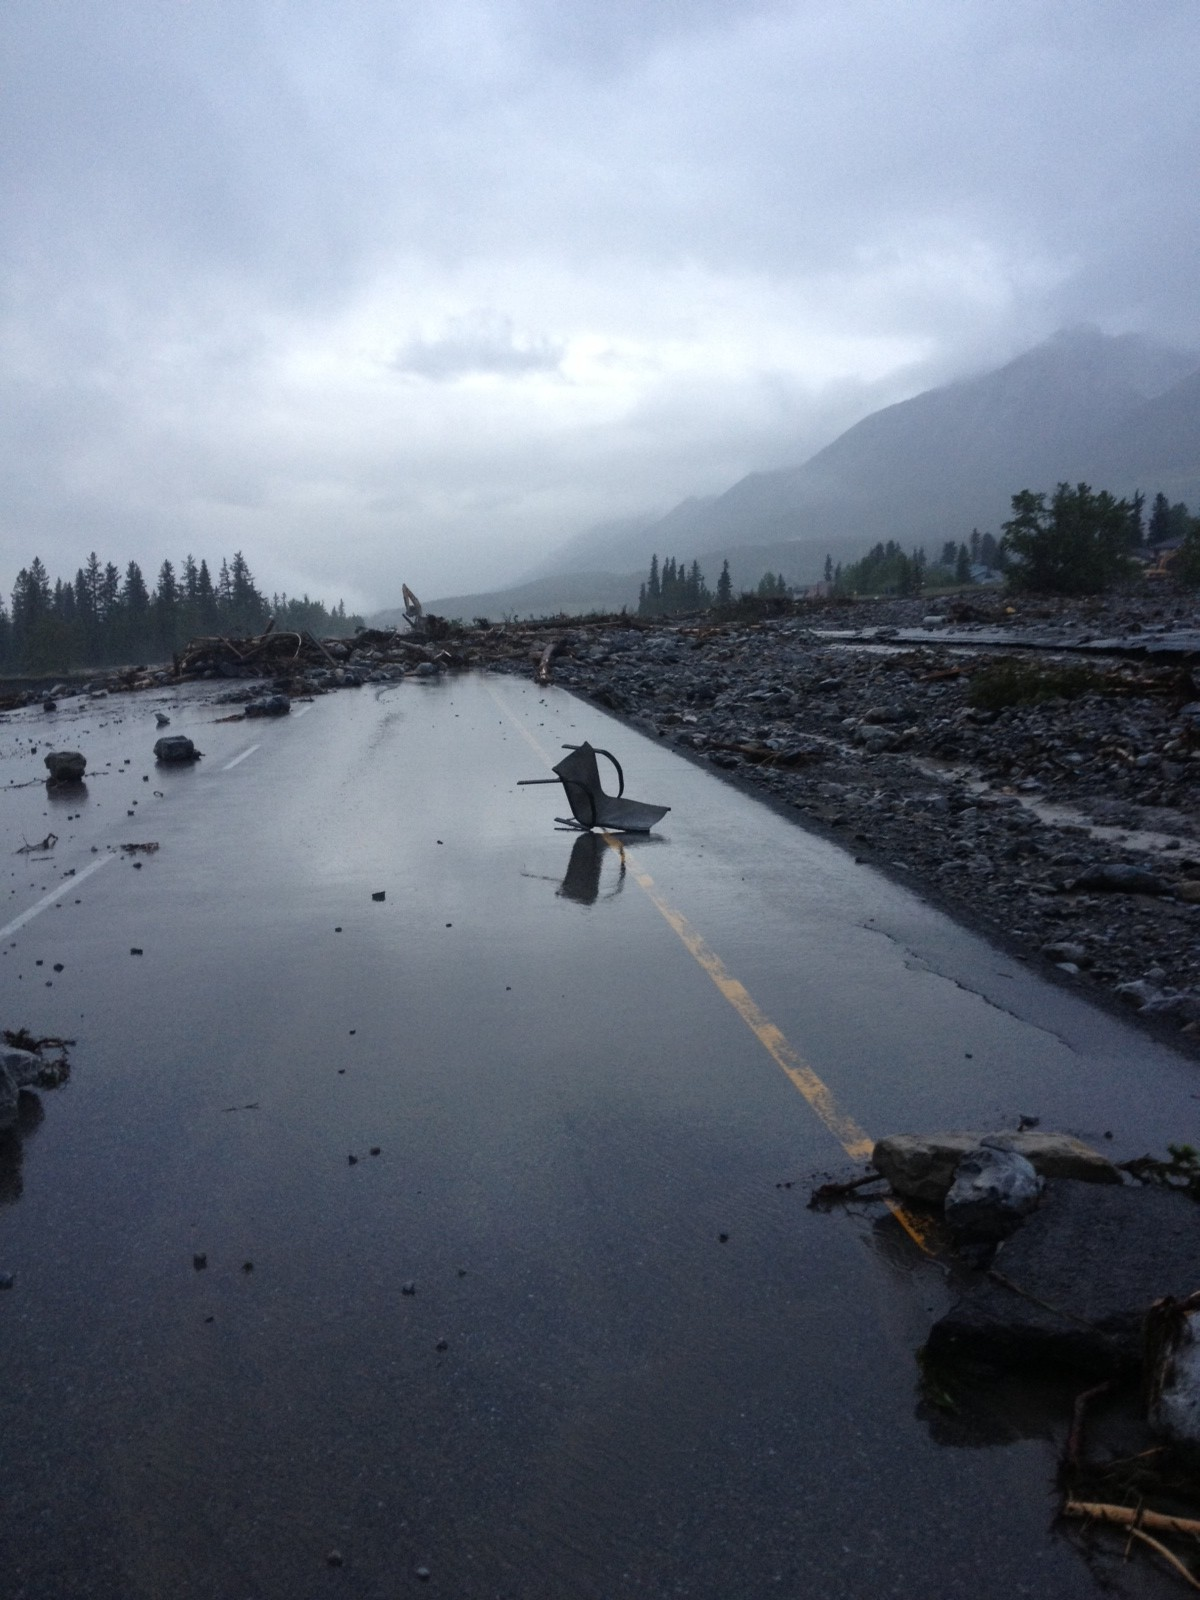 Flooding debris littering and closing the Trans Canada Highway in Canmore, Alberta